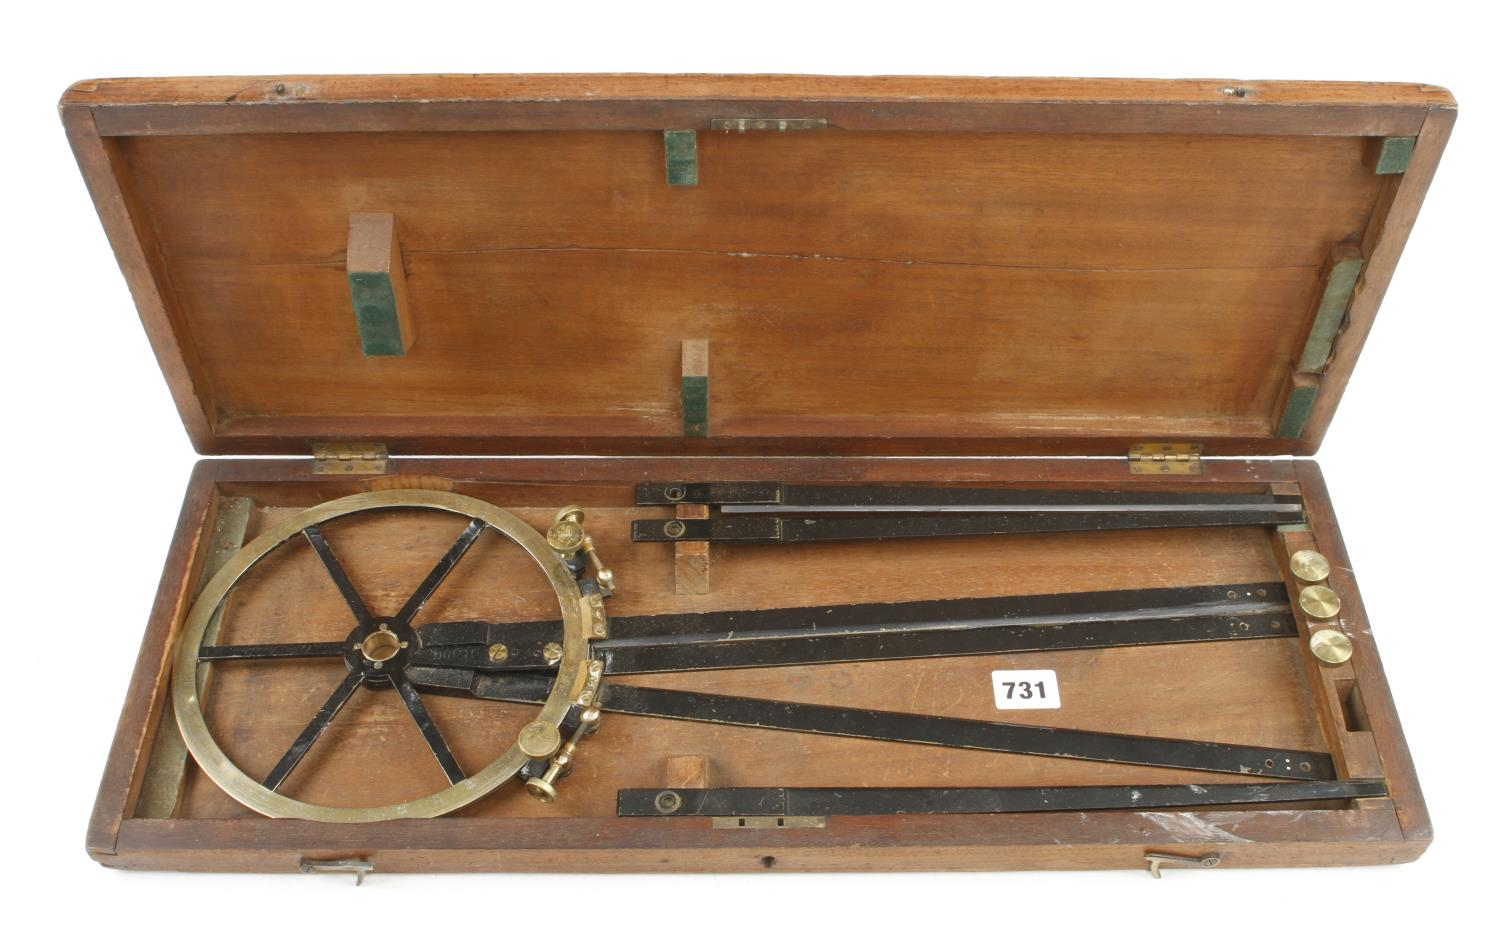 A lacquered brass course indicator by CARY London No R199 with extensions in orig box G+